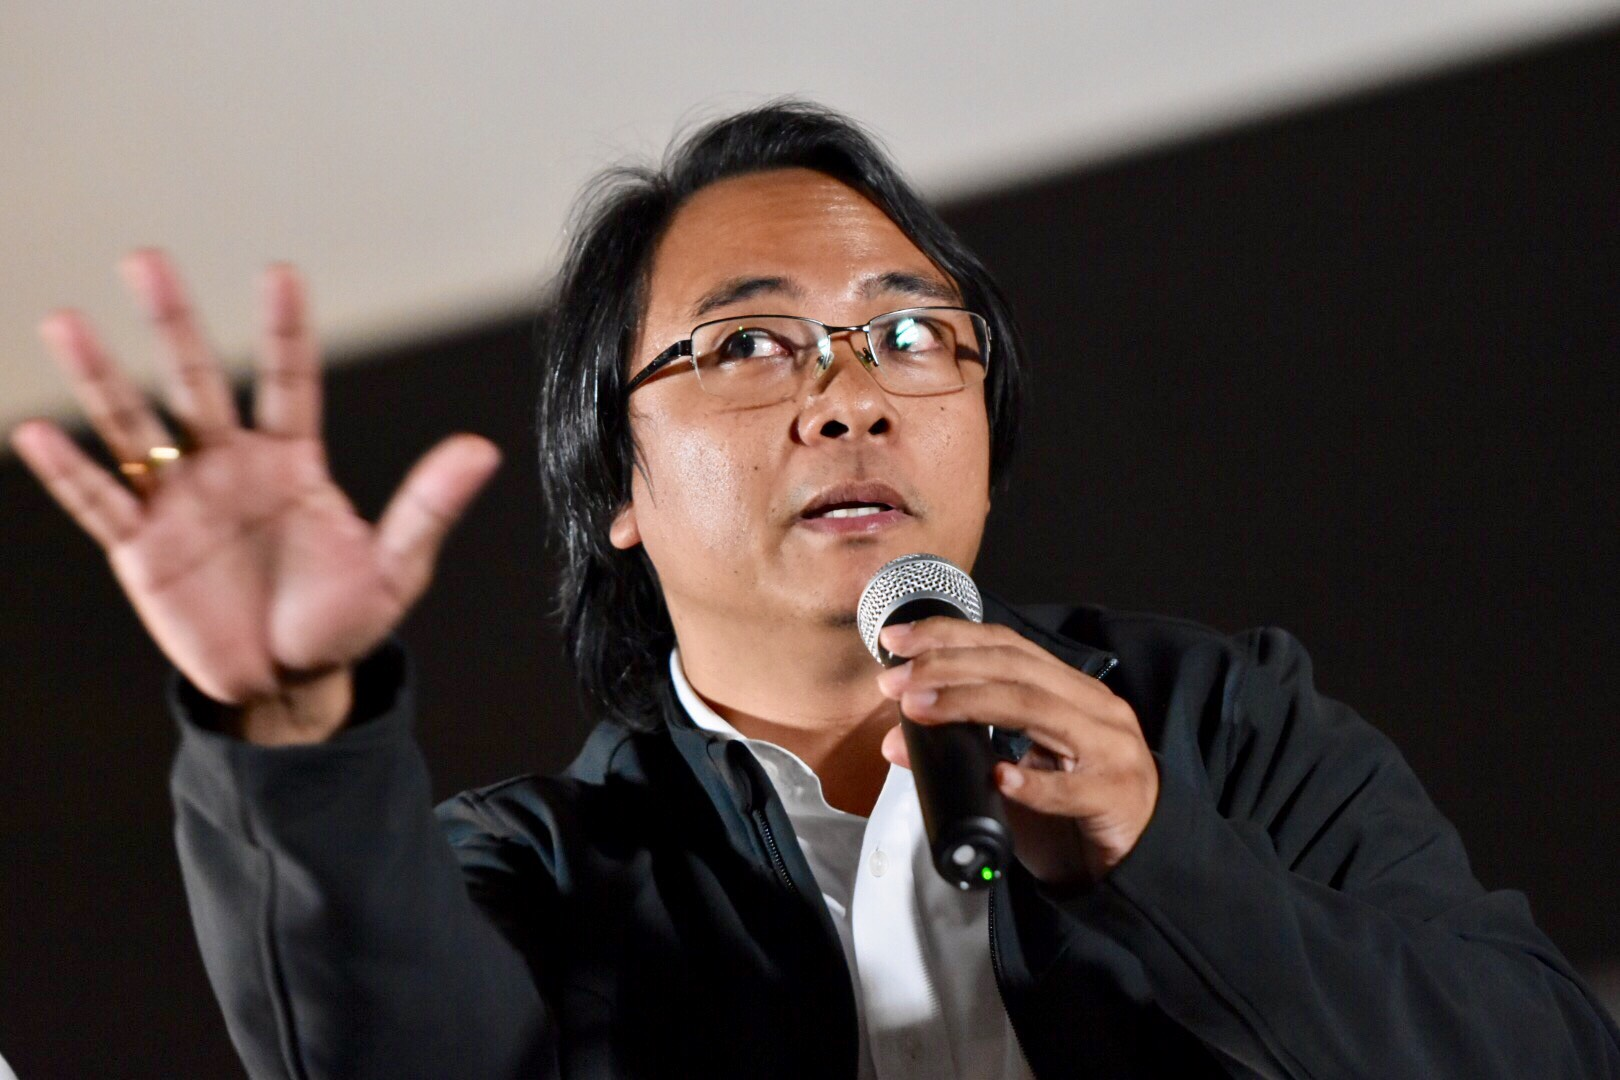 RENEWABLE ENERGY. Greenpeace PH Executive Director Yeb Saño says he is optimistic the Philippines can run its economy on a hundred-percent renewable energy